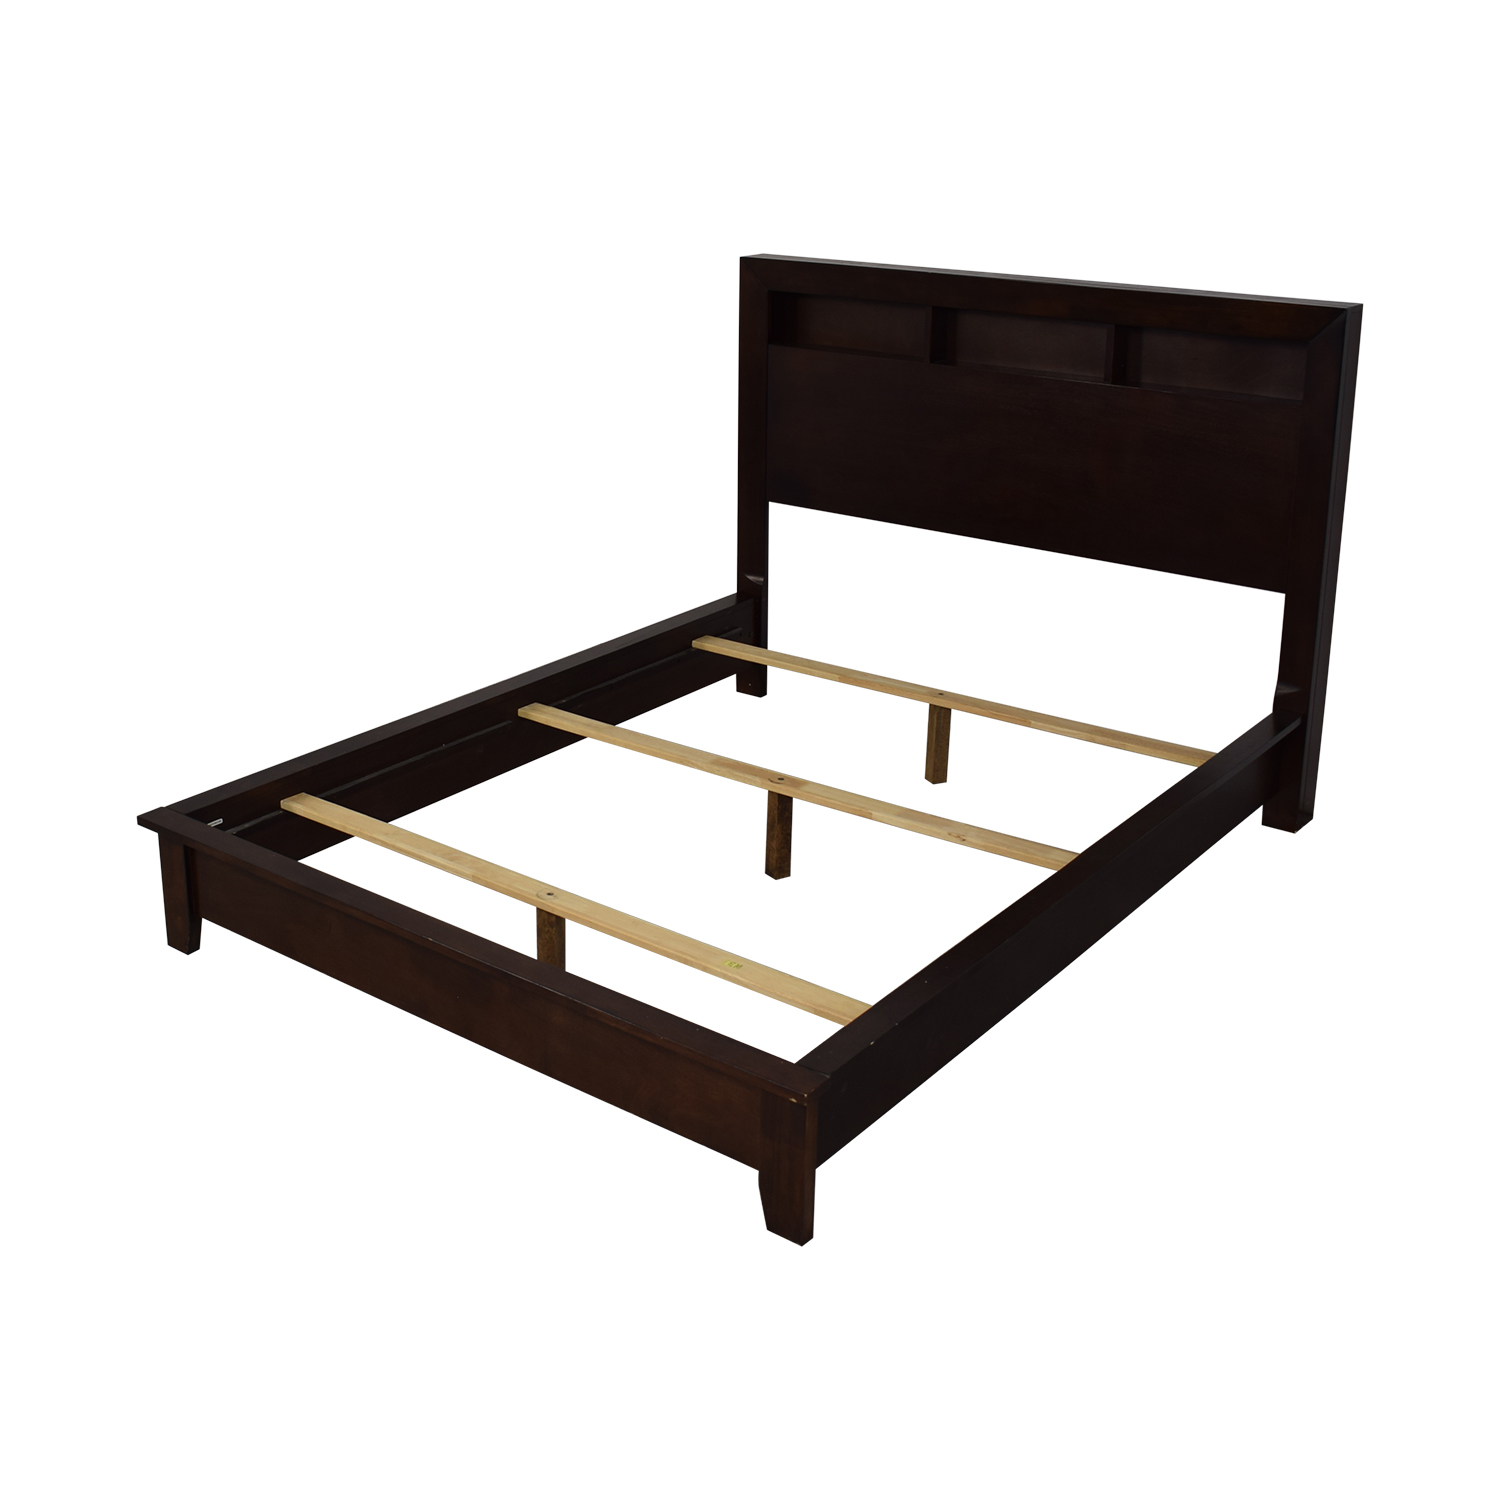 American Furniture Queen Bed Frame / Bed Frames